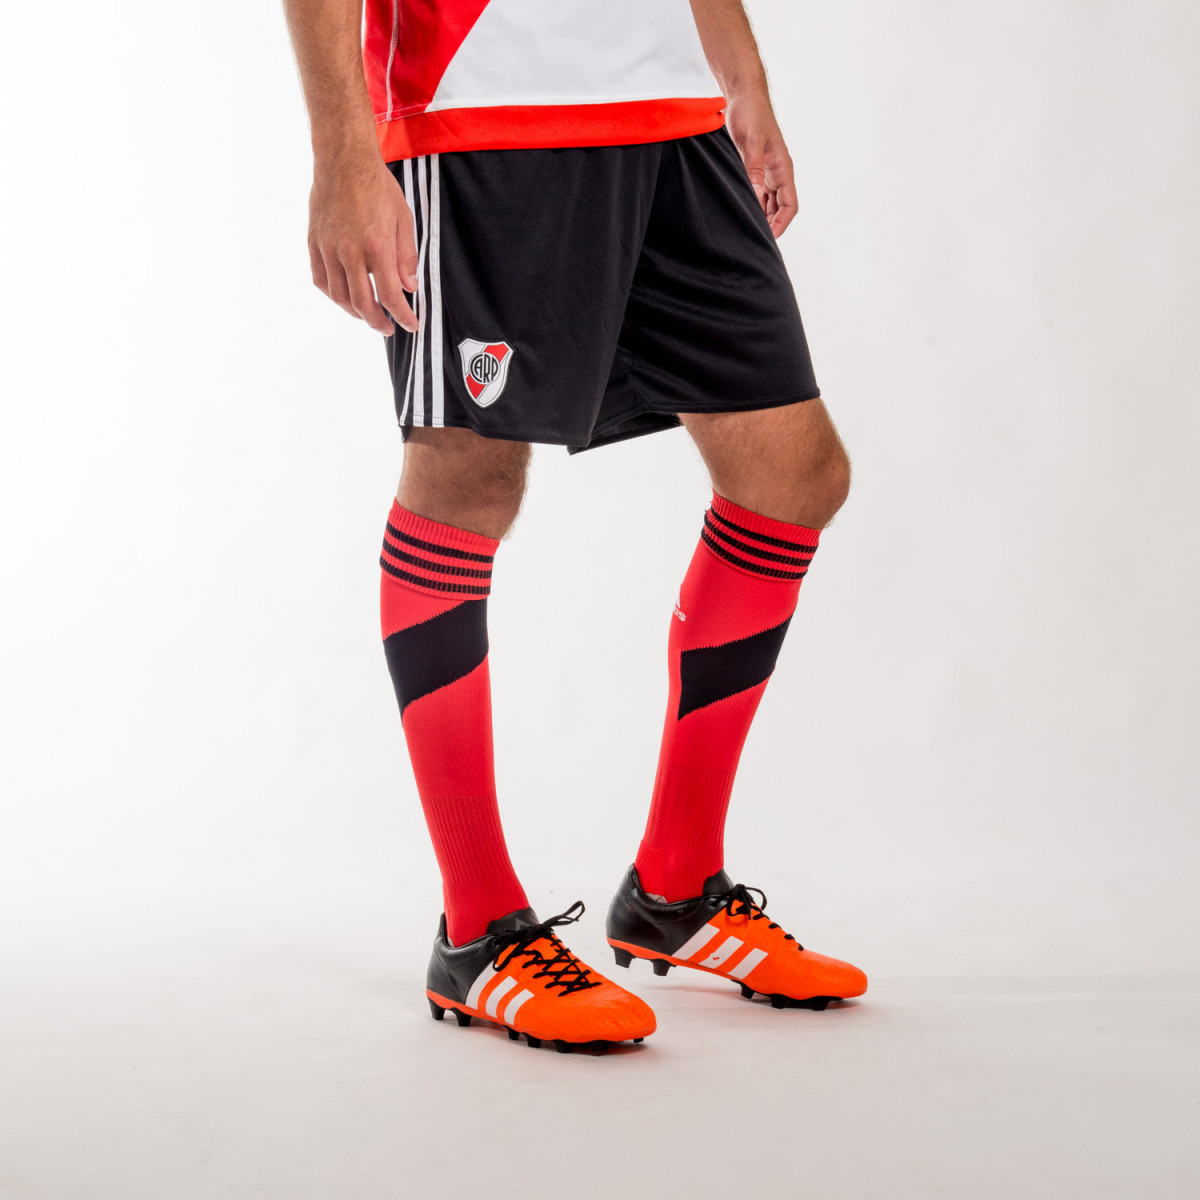 SHORT ADIDAS RIVER PLATE 2016